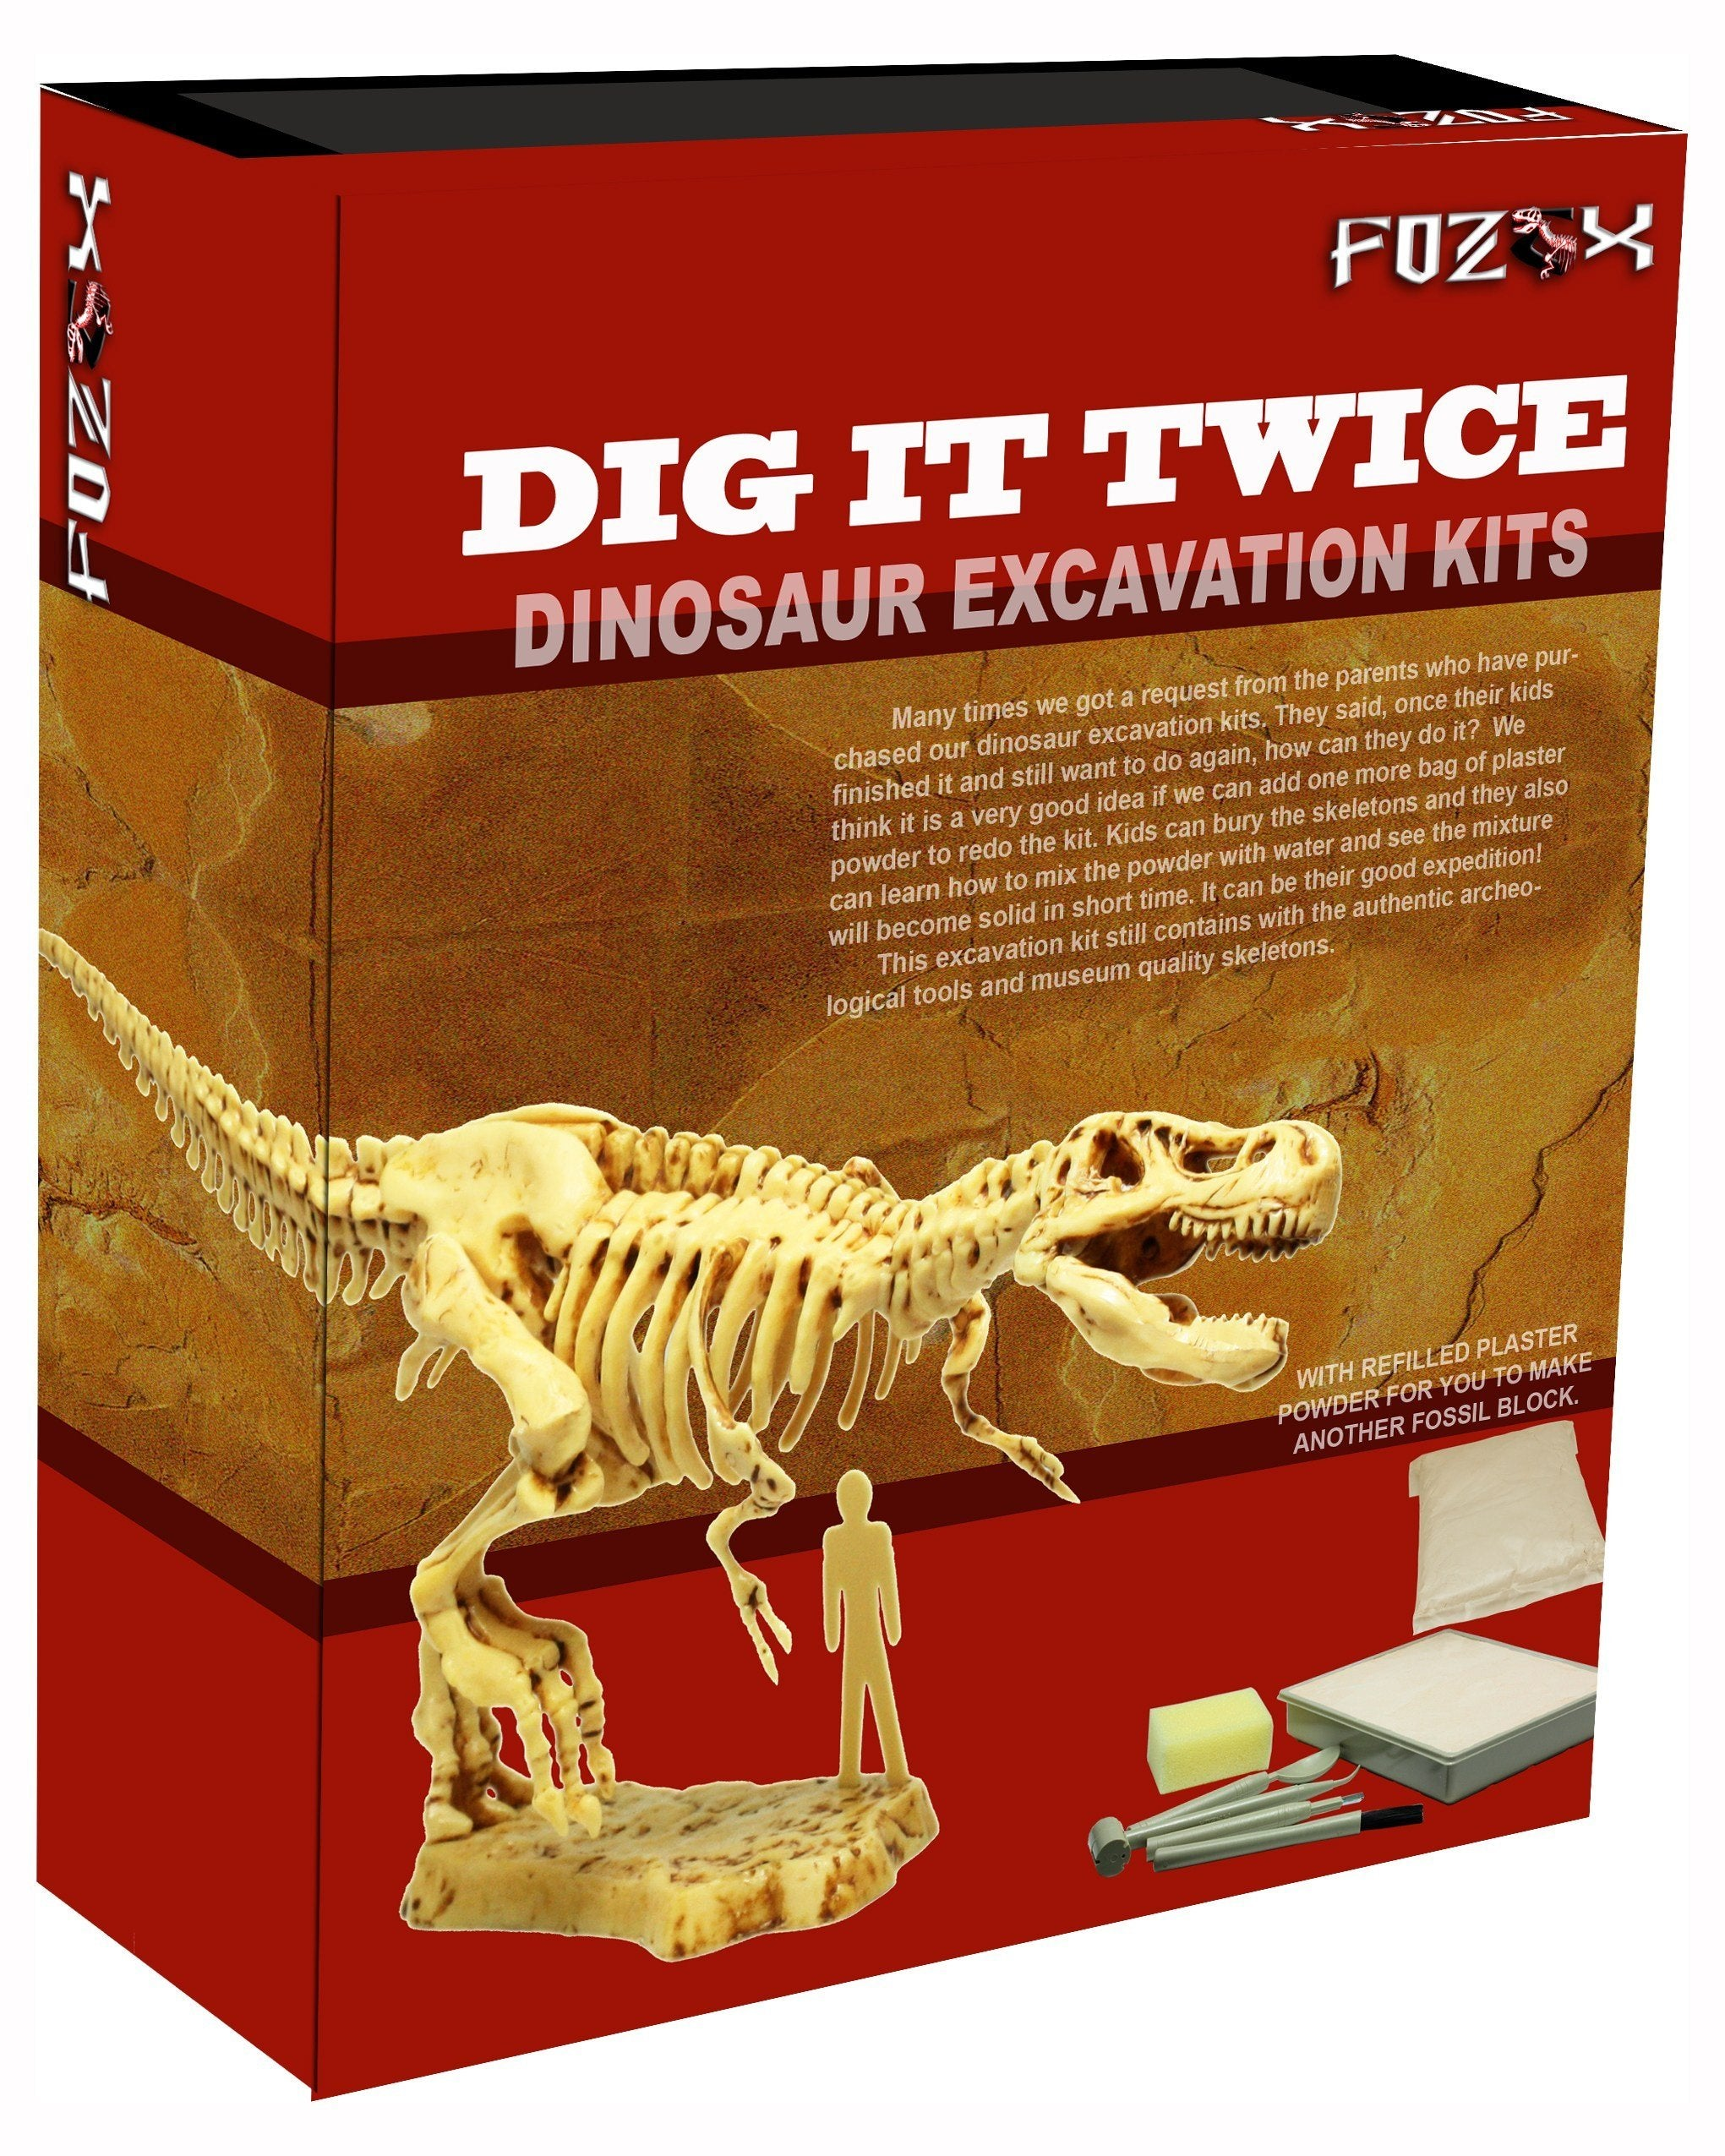 Mr Bottle's Kids Party - Dinosaur Skeleton Dig it Twice Fossil Digging Set @ $28 U.P $36.90